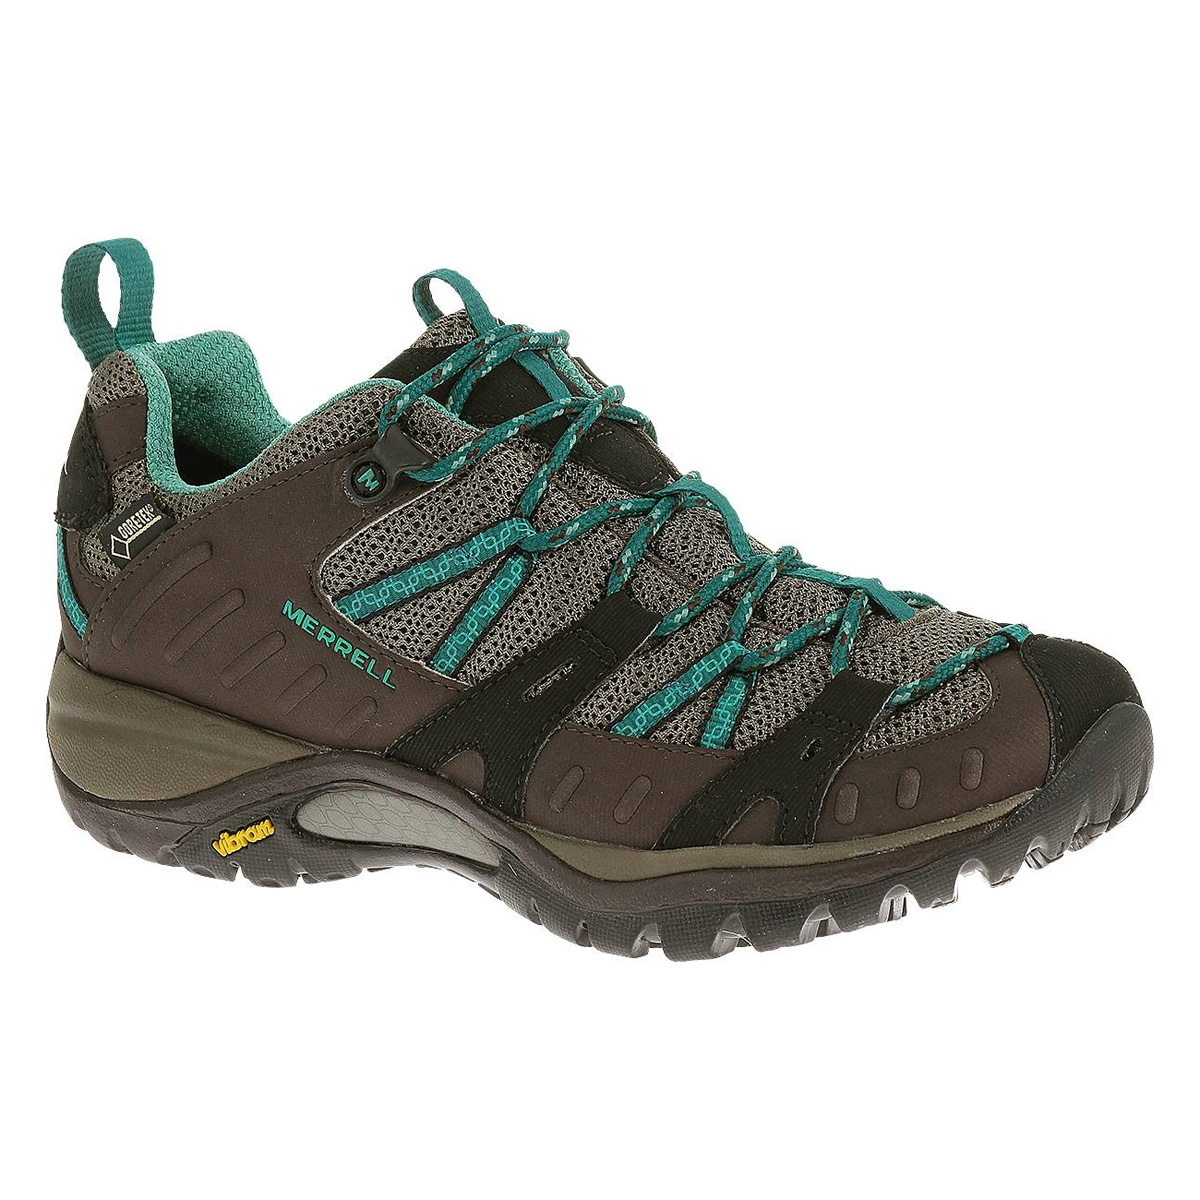 Image of Merrell Siren Sport GTX Walking Shoes (Women's) - Espresso /  Mineral